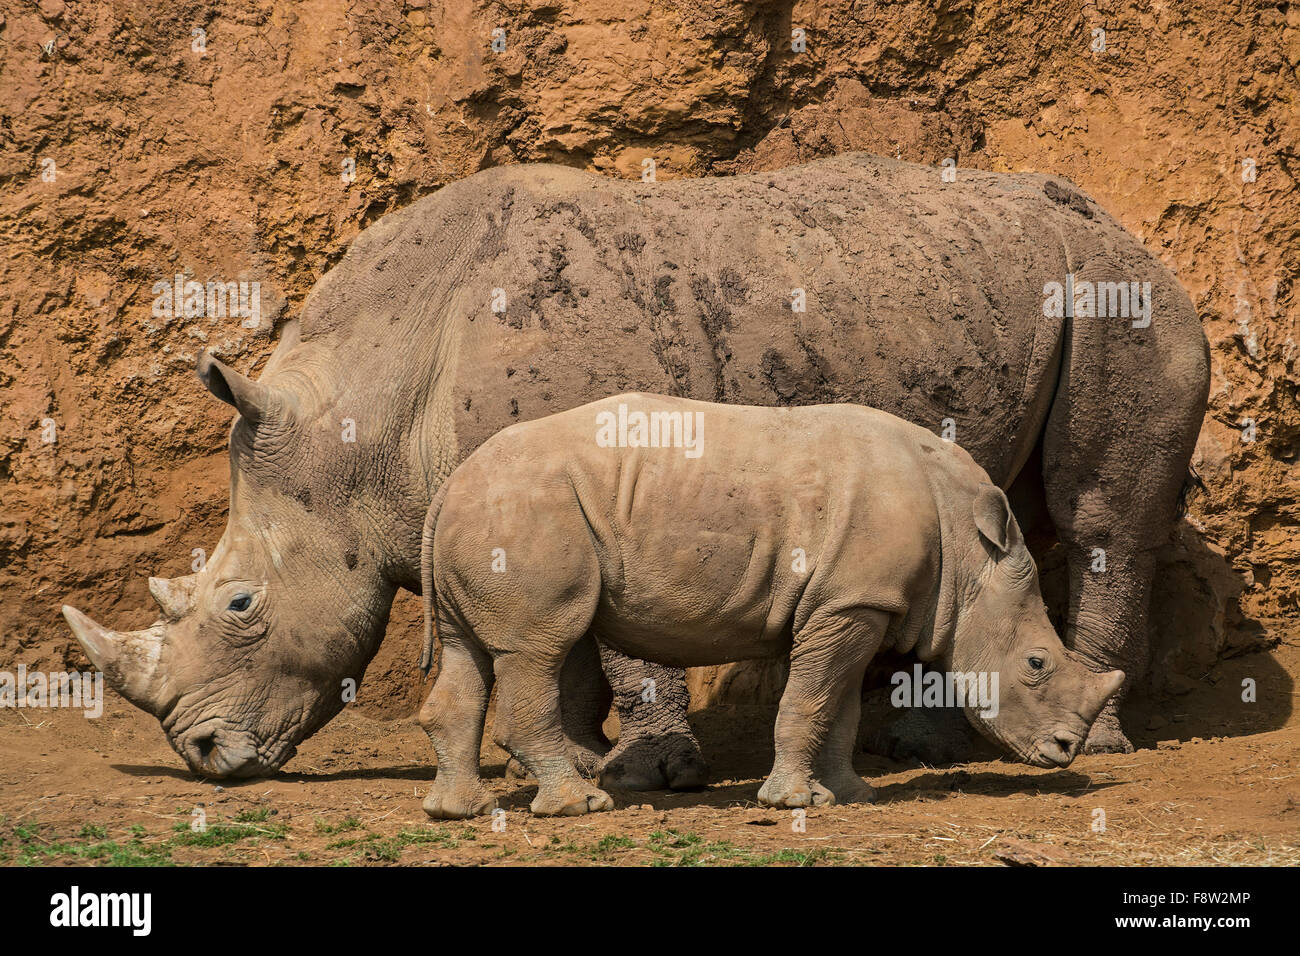 White rhino / Square-lipped rhinoceros (Ceratotherium simum) female with calf - Stock Image